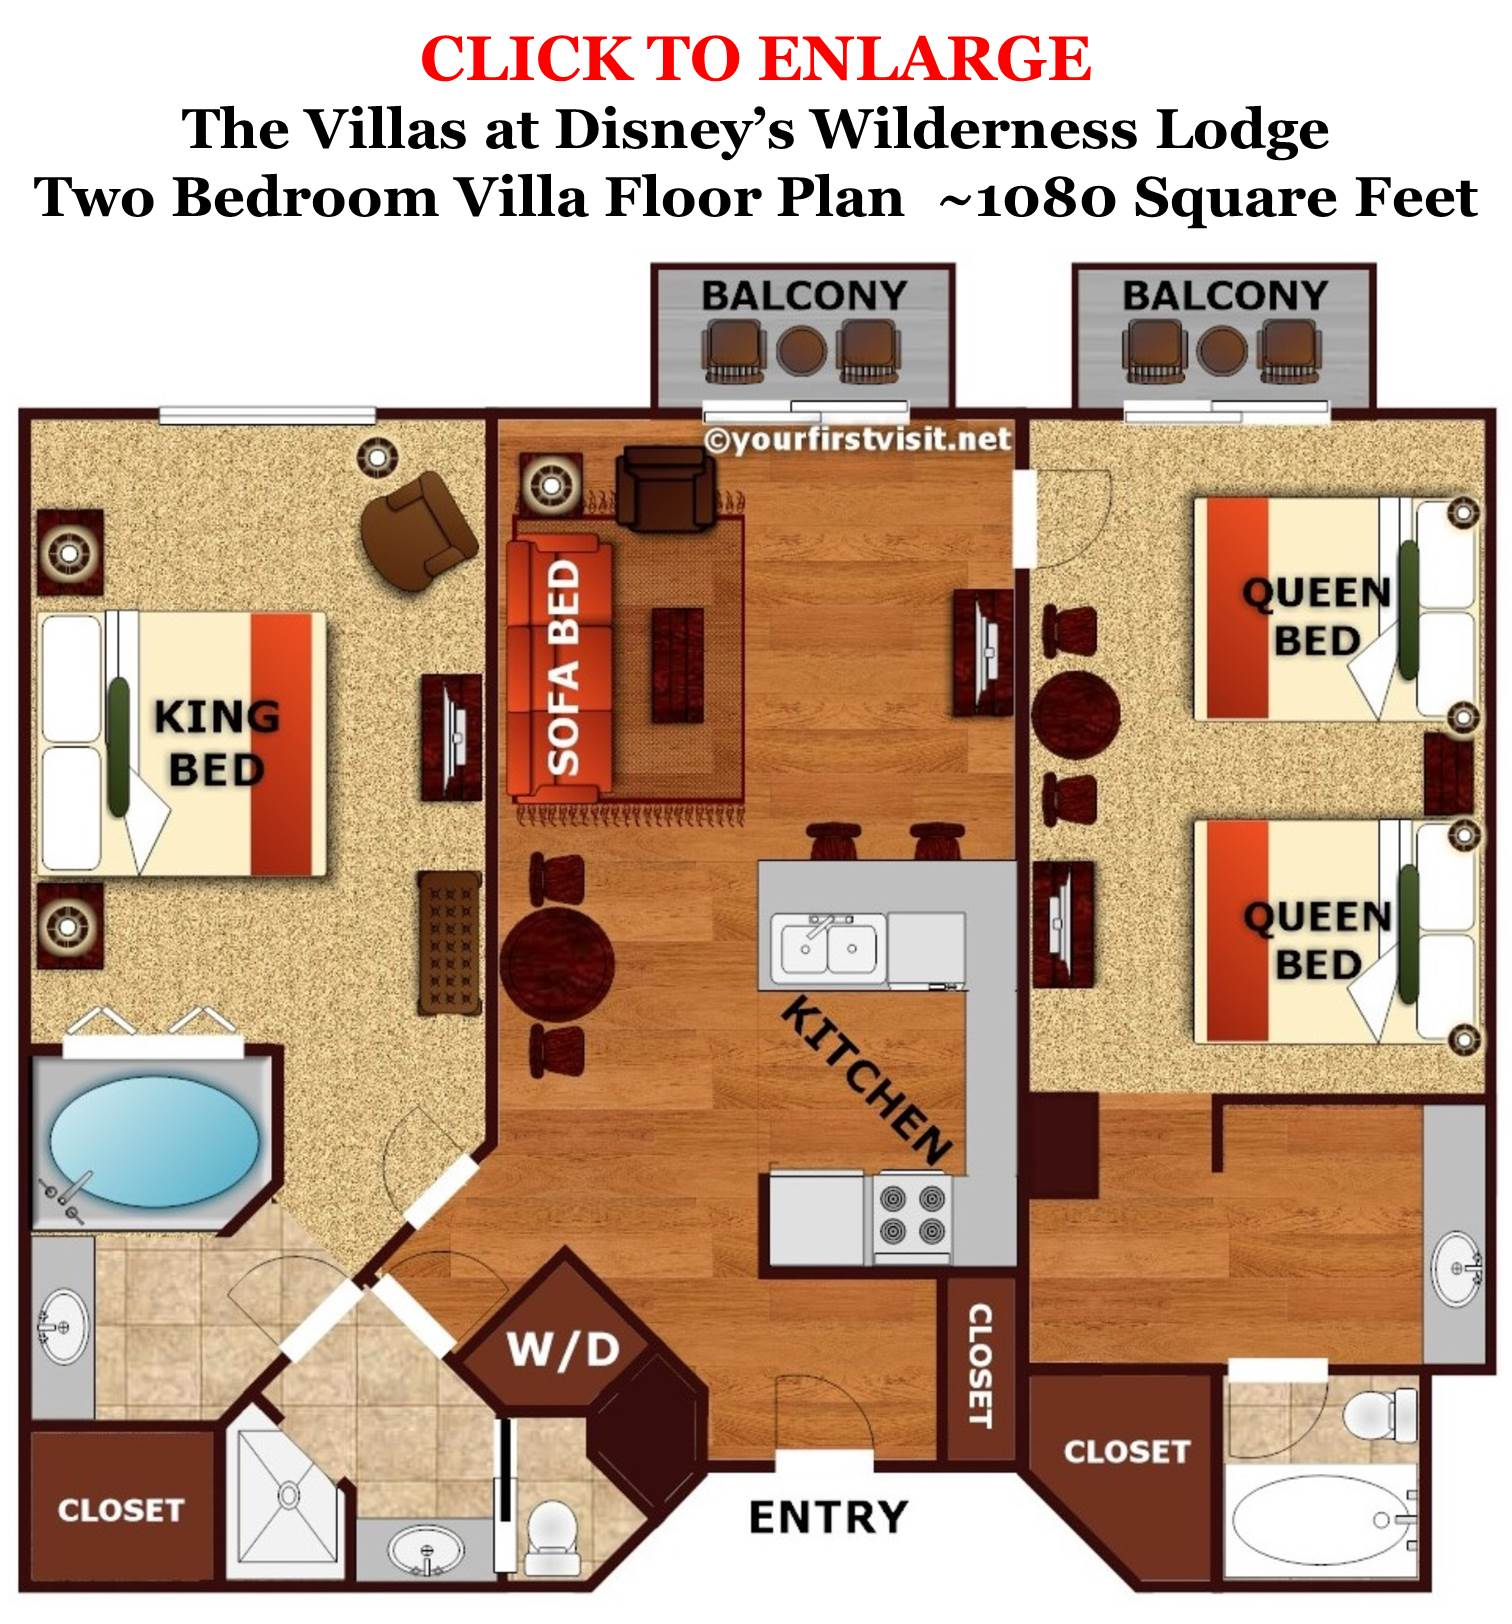 Sleeping space options and bed types at walt disney world for Lodge plans with 8 bedrooms